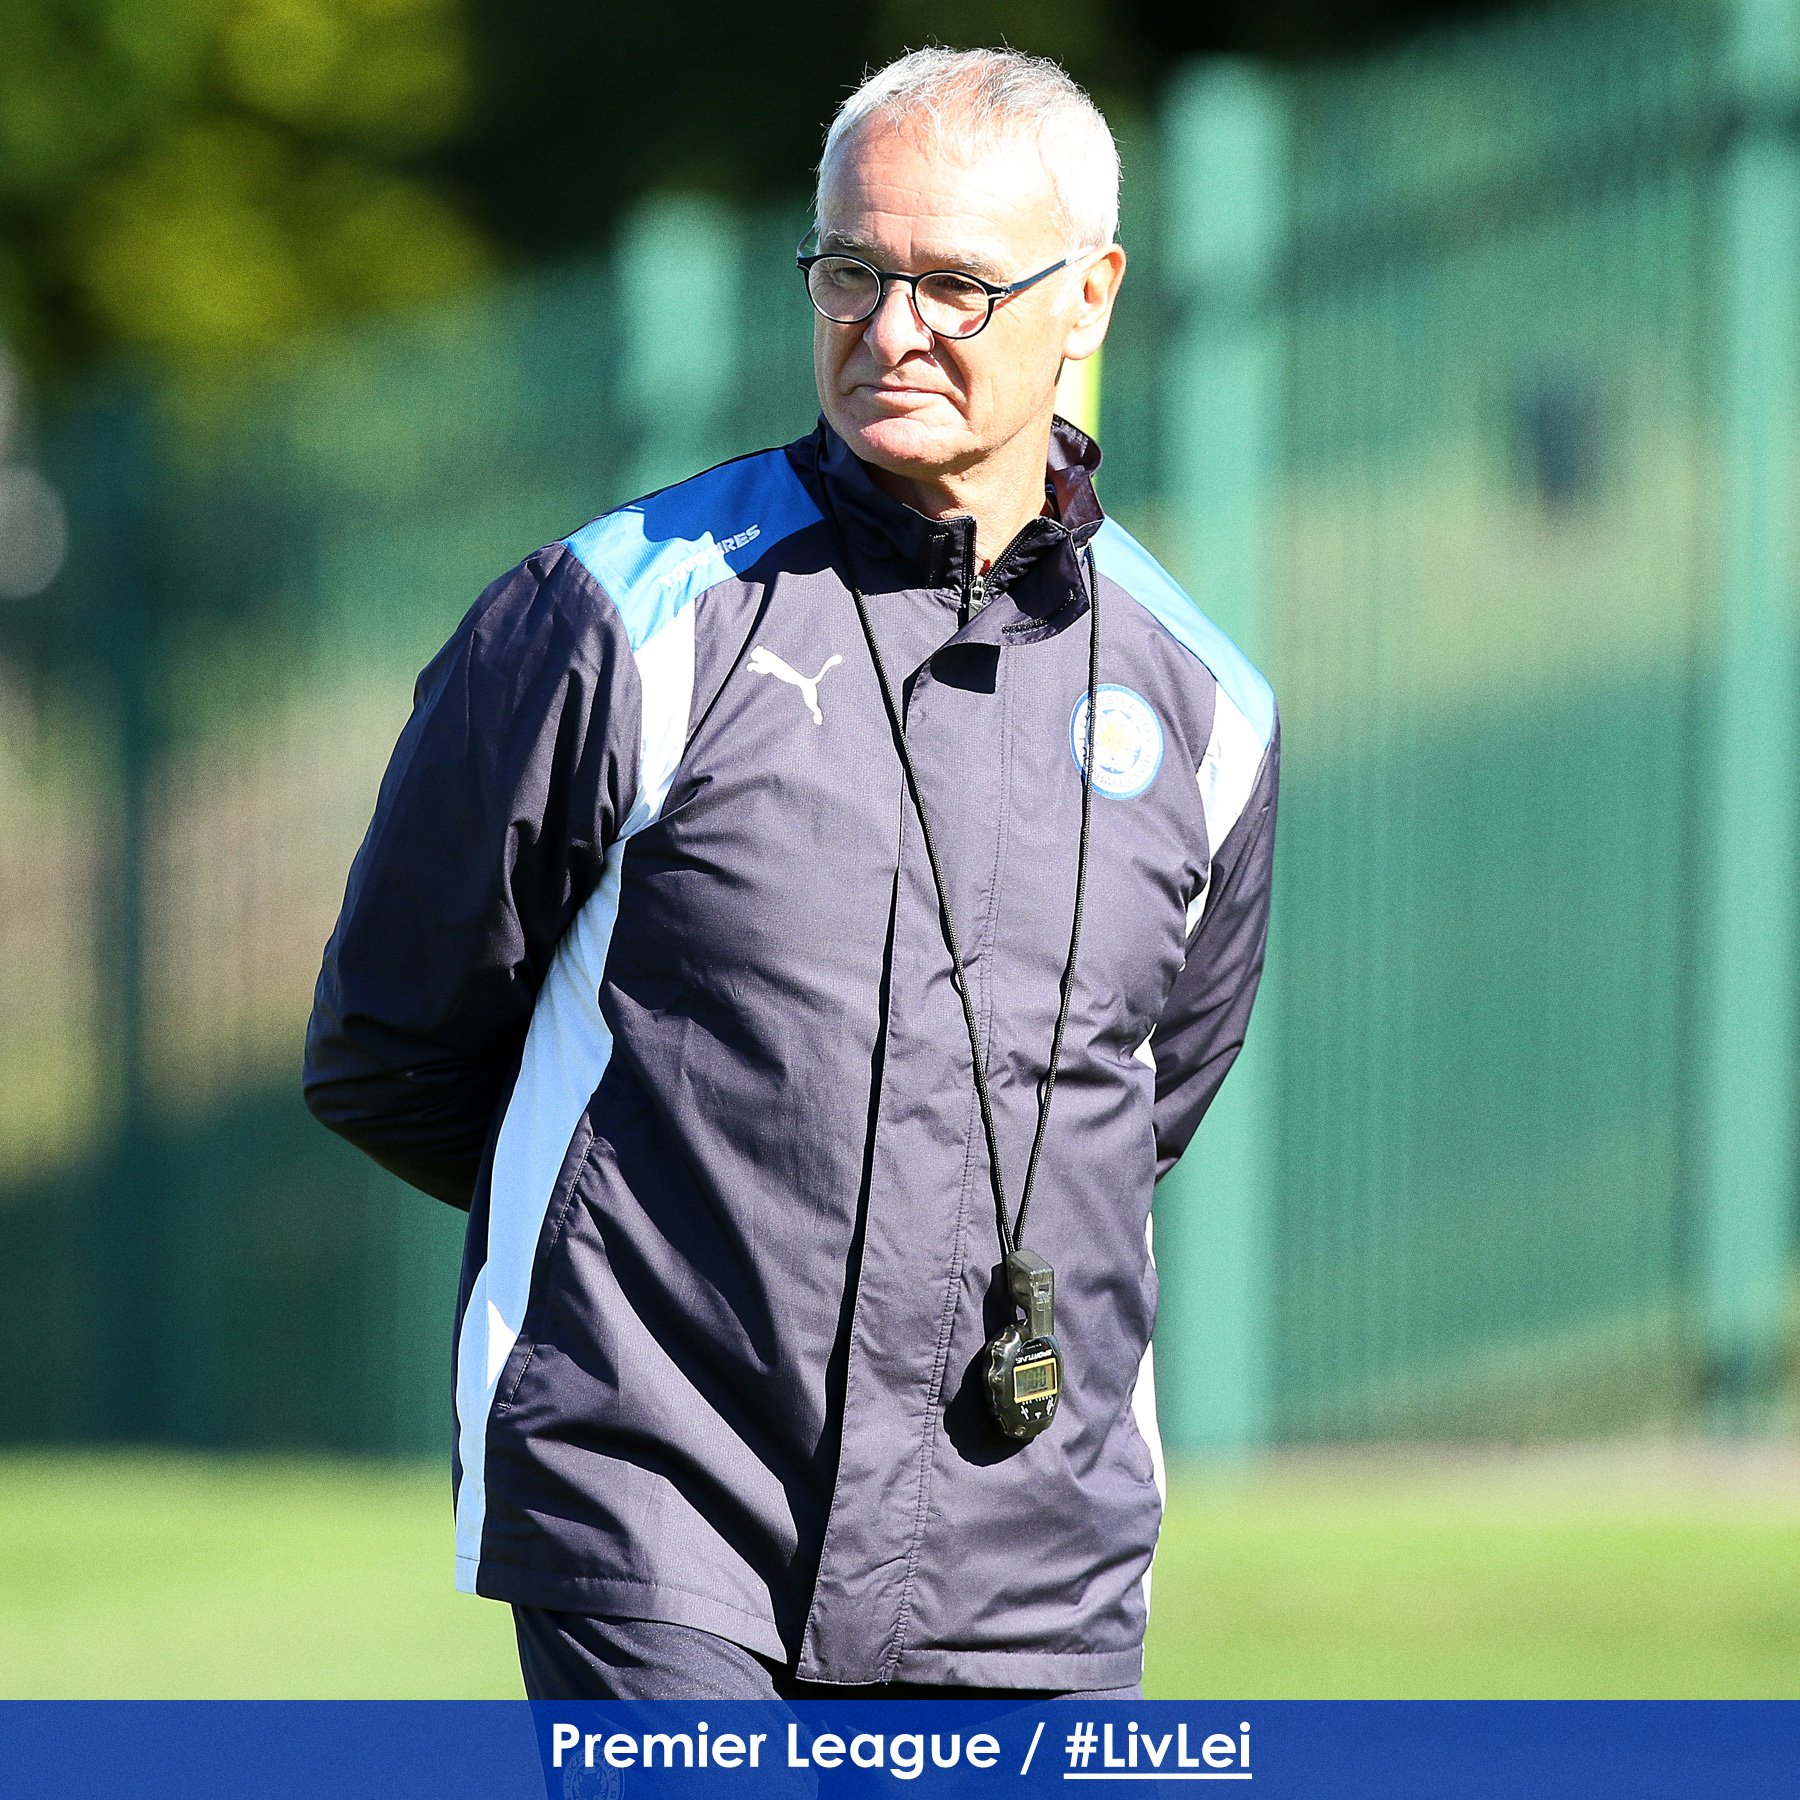 Ranieri Backs Conte To Succeed At Chelsea, Welcomes Kante Back